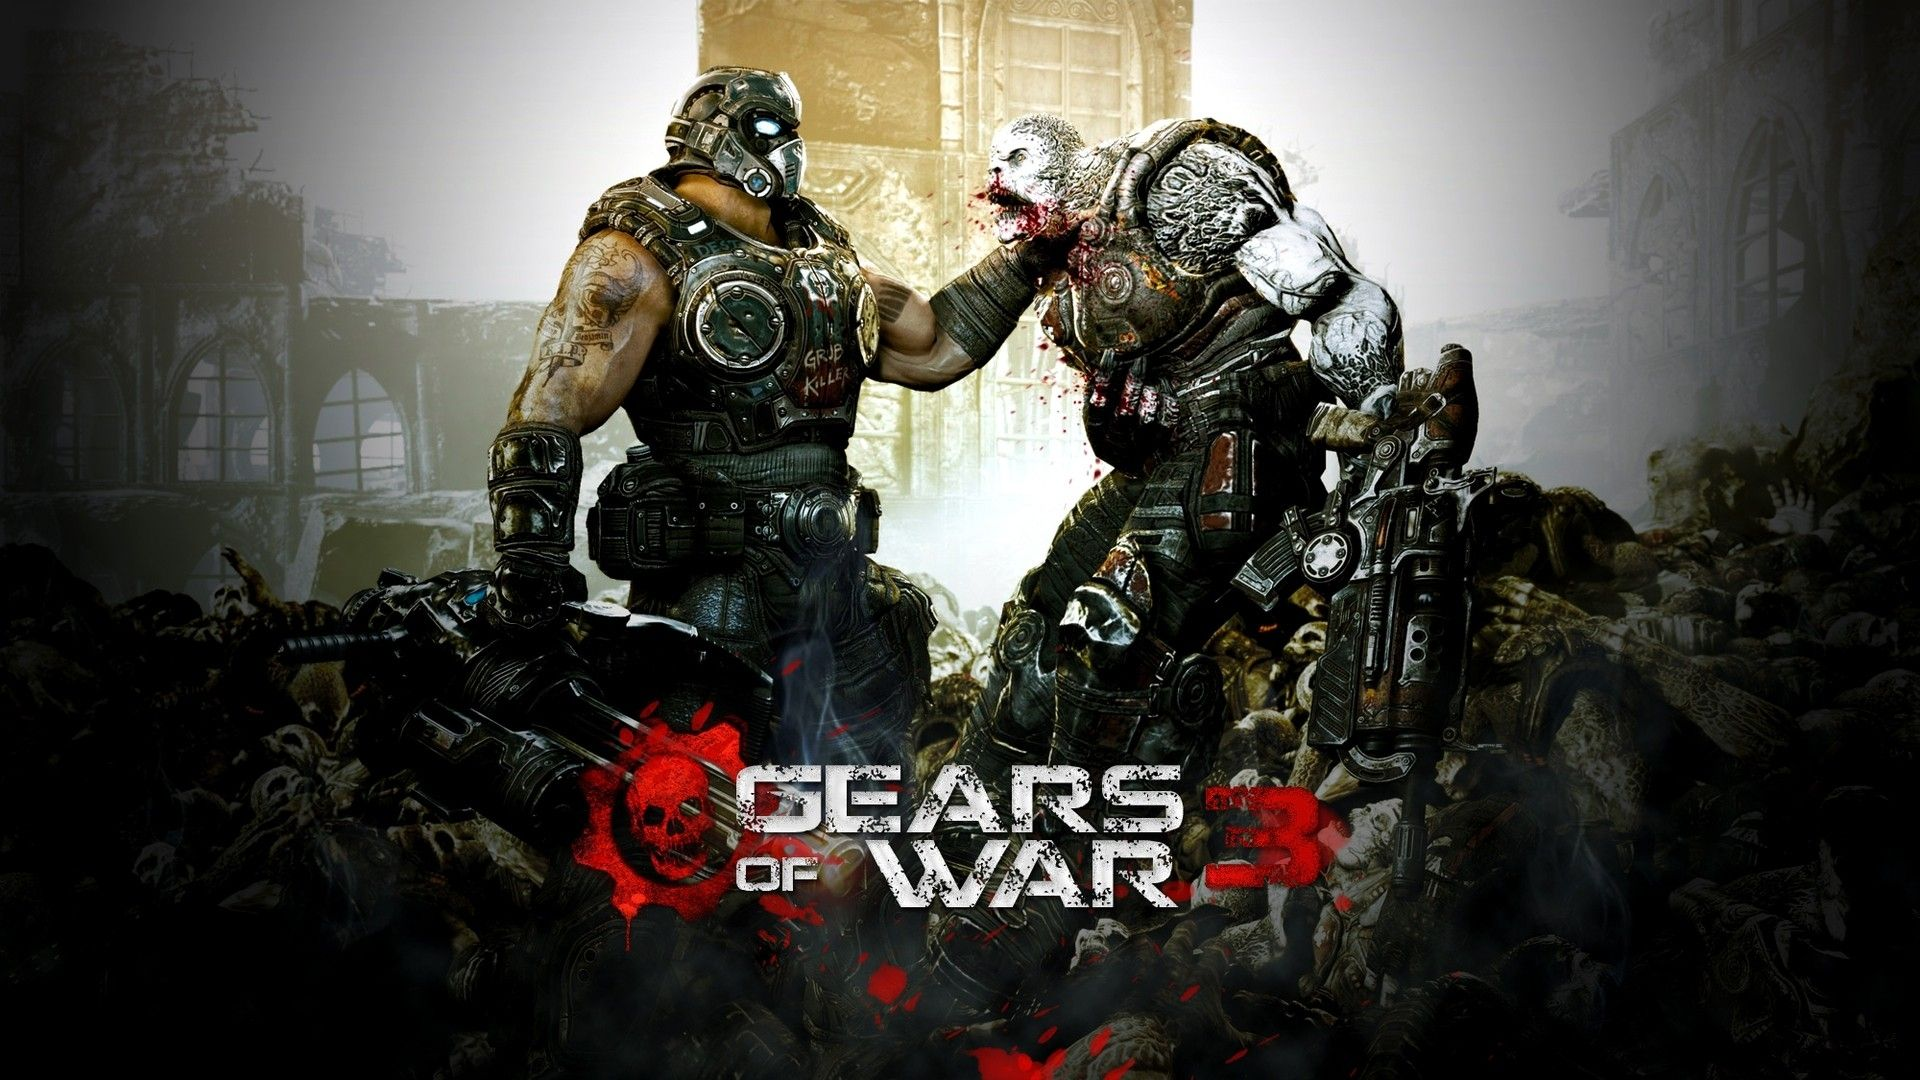 Pin On Gears Of Walr Games